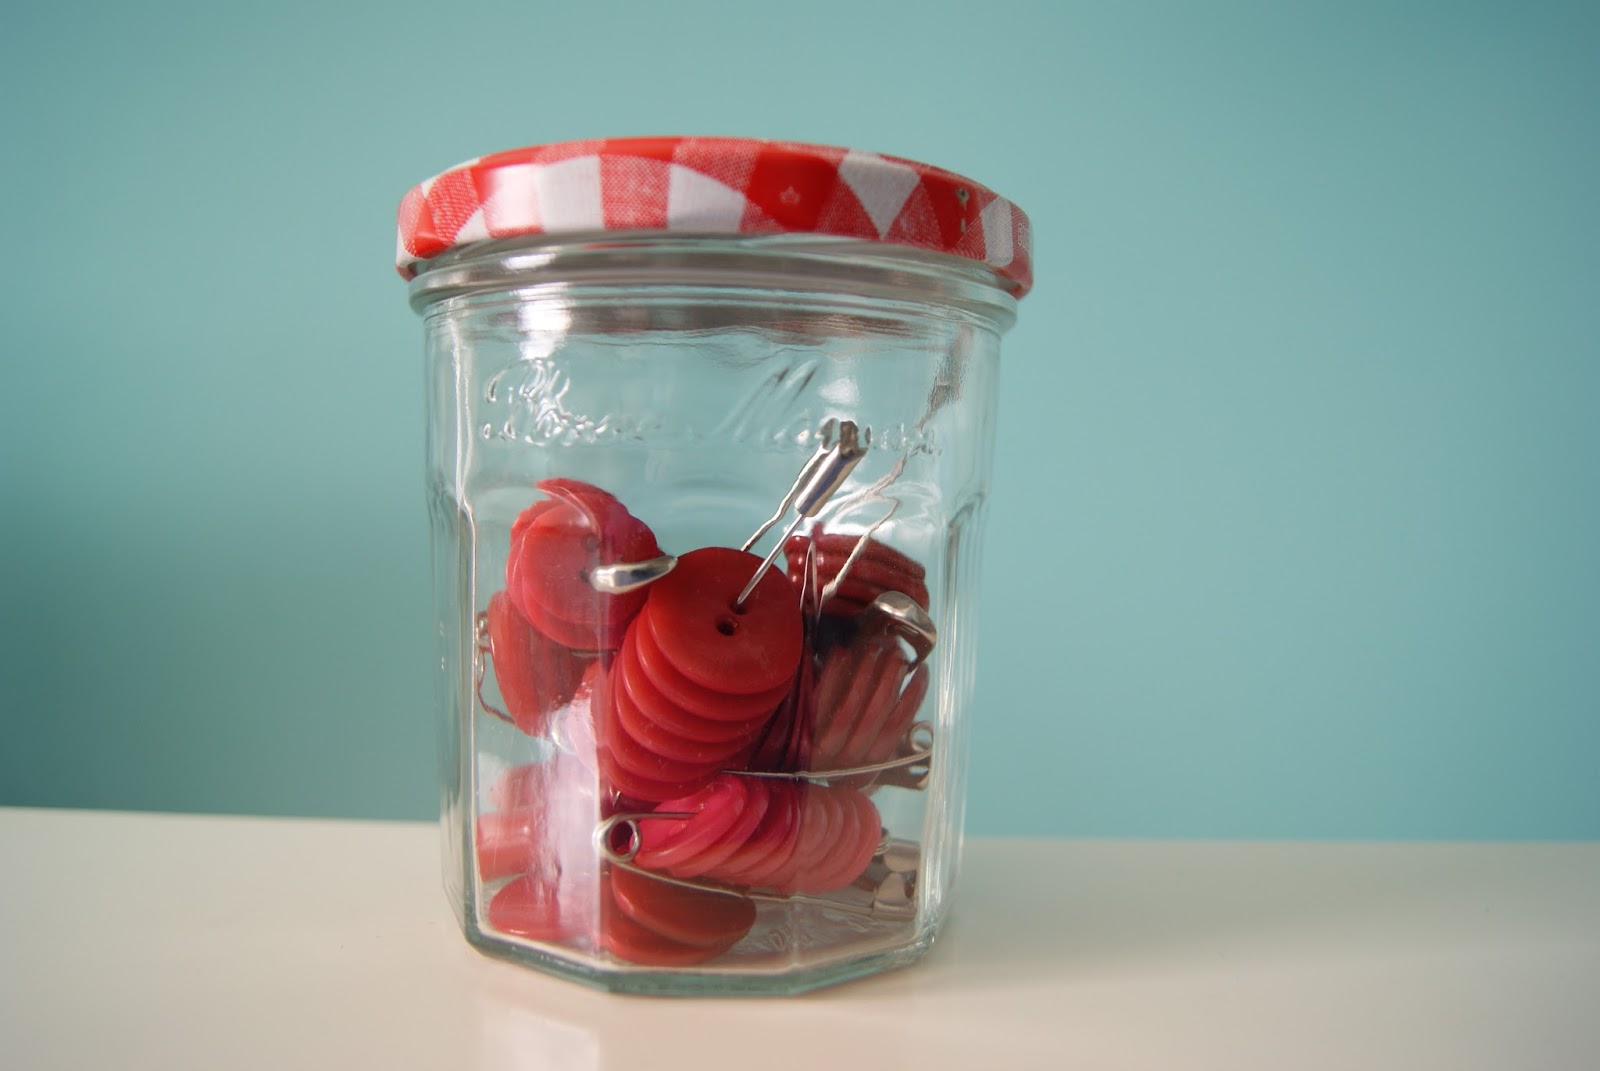 button storage on large safety pins, all same color buttons in one jar by nest full of eggs